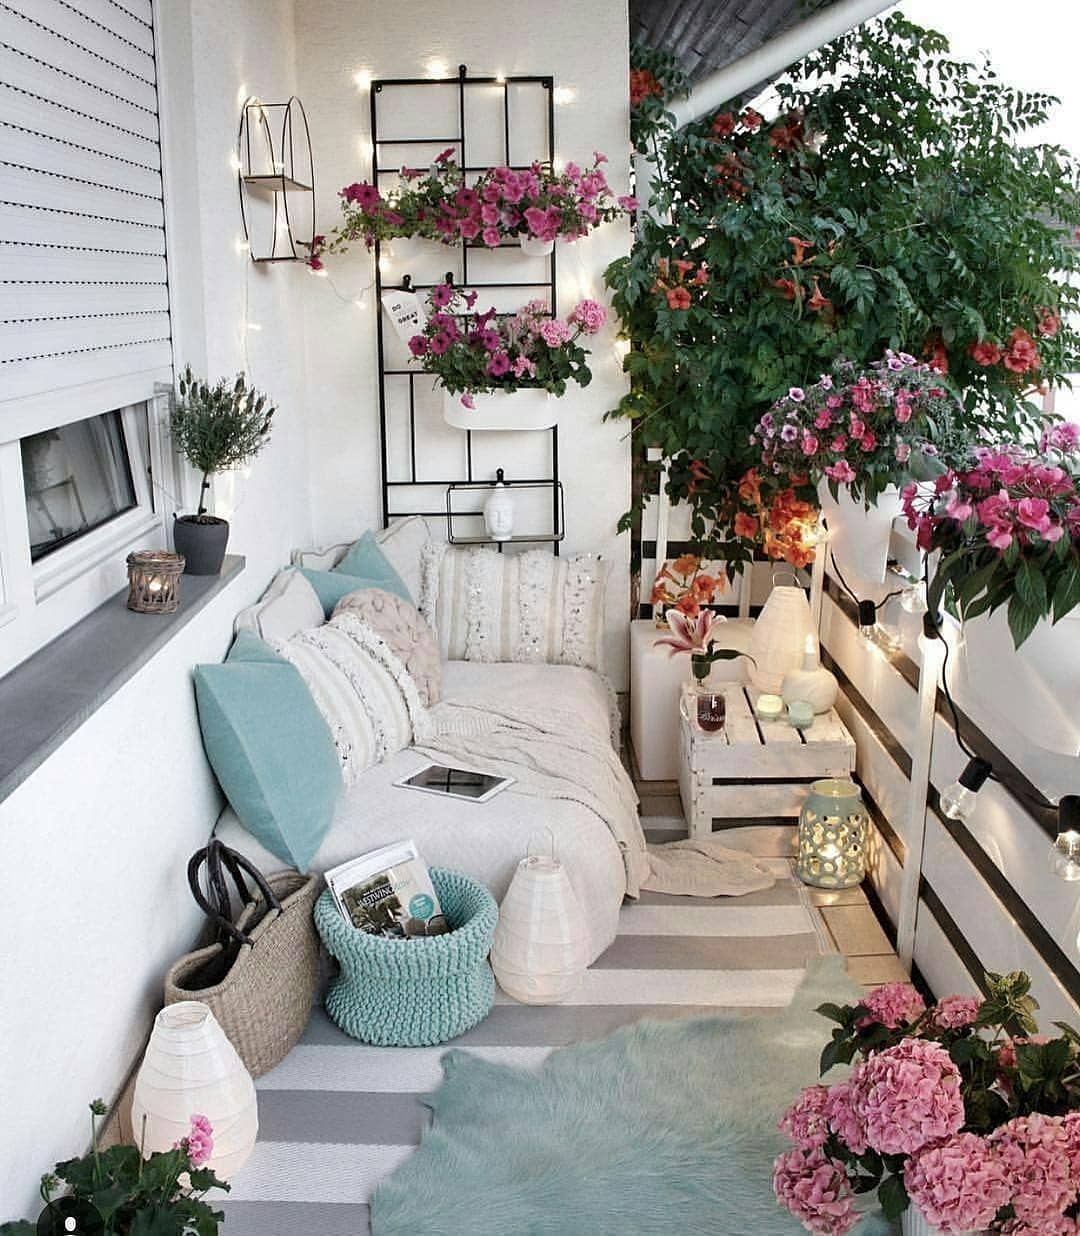 40 Cozy Balcony Ideas And Decor Inspiration 2019 Page 21 Of 41 My Blog Apartment Balcony Decorating Small Balcony Decor Balcony Decor